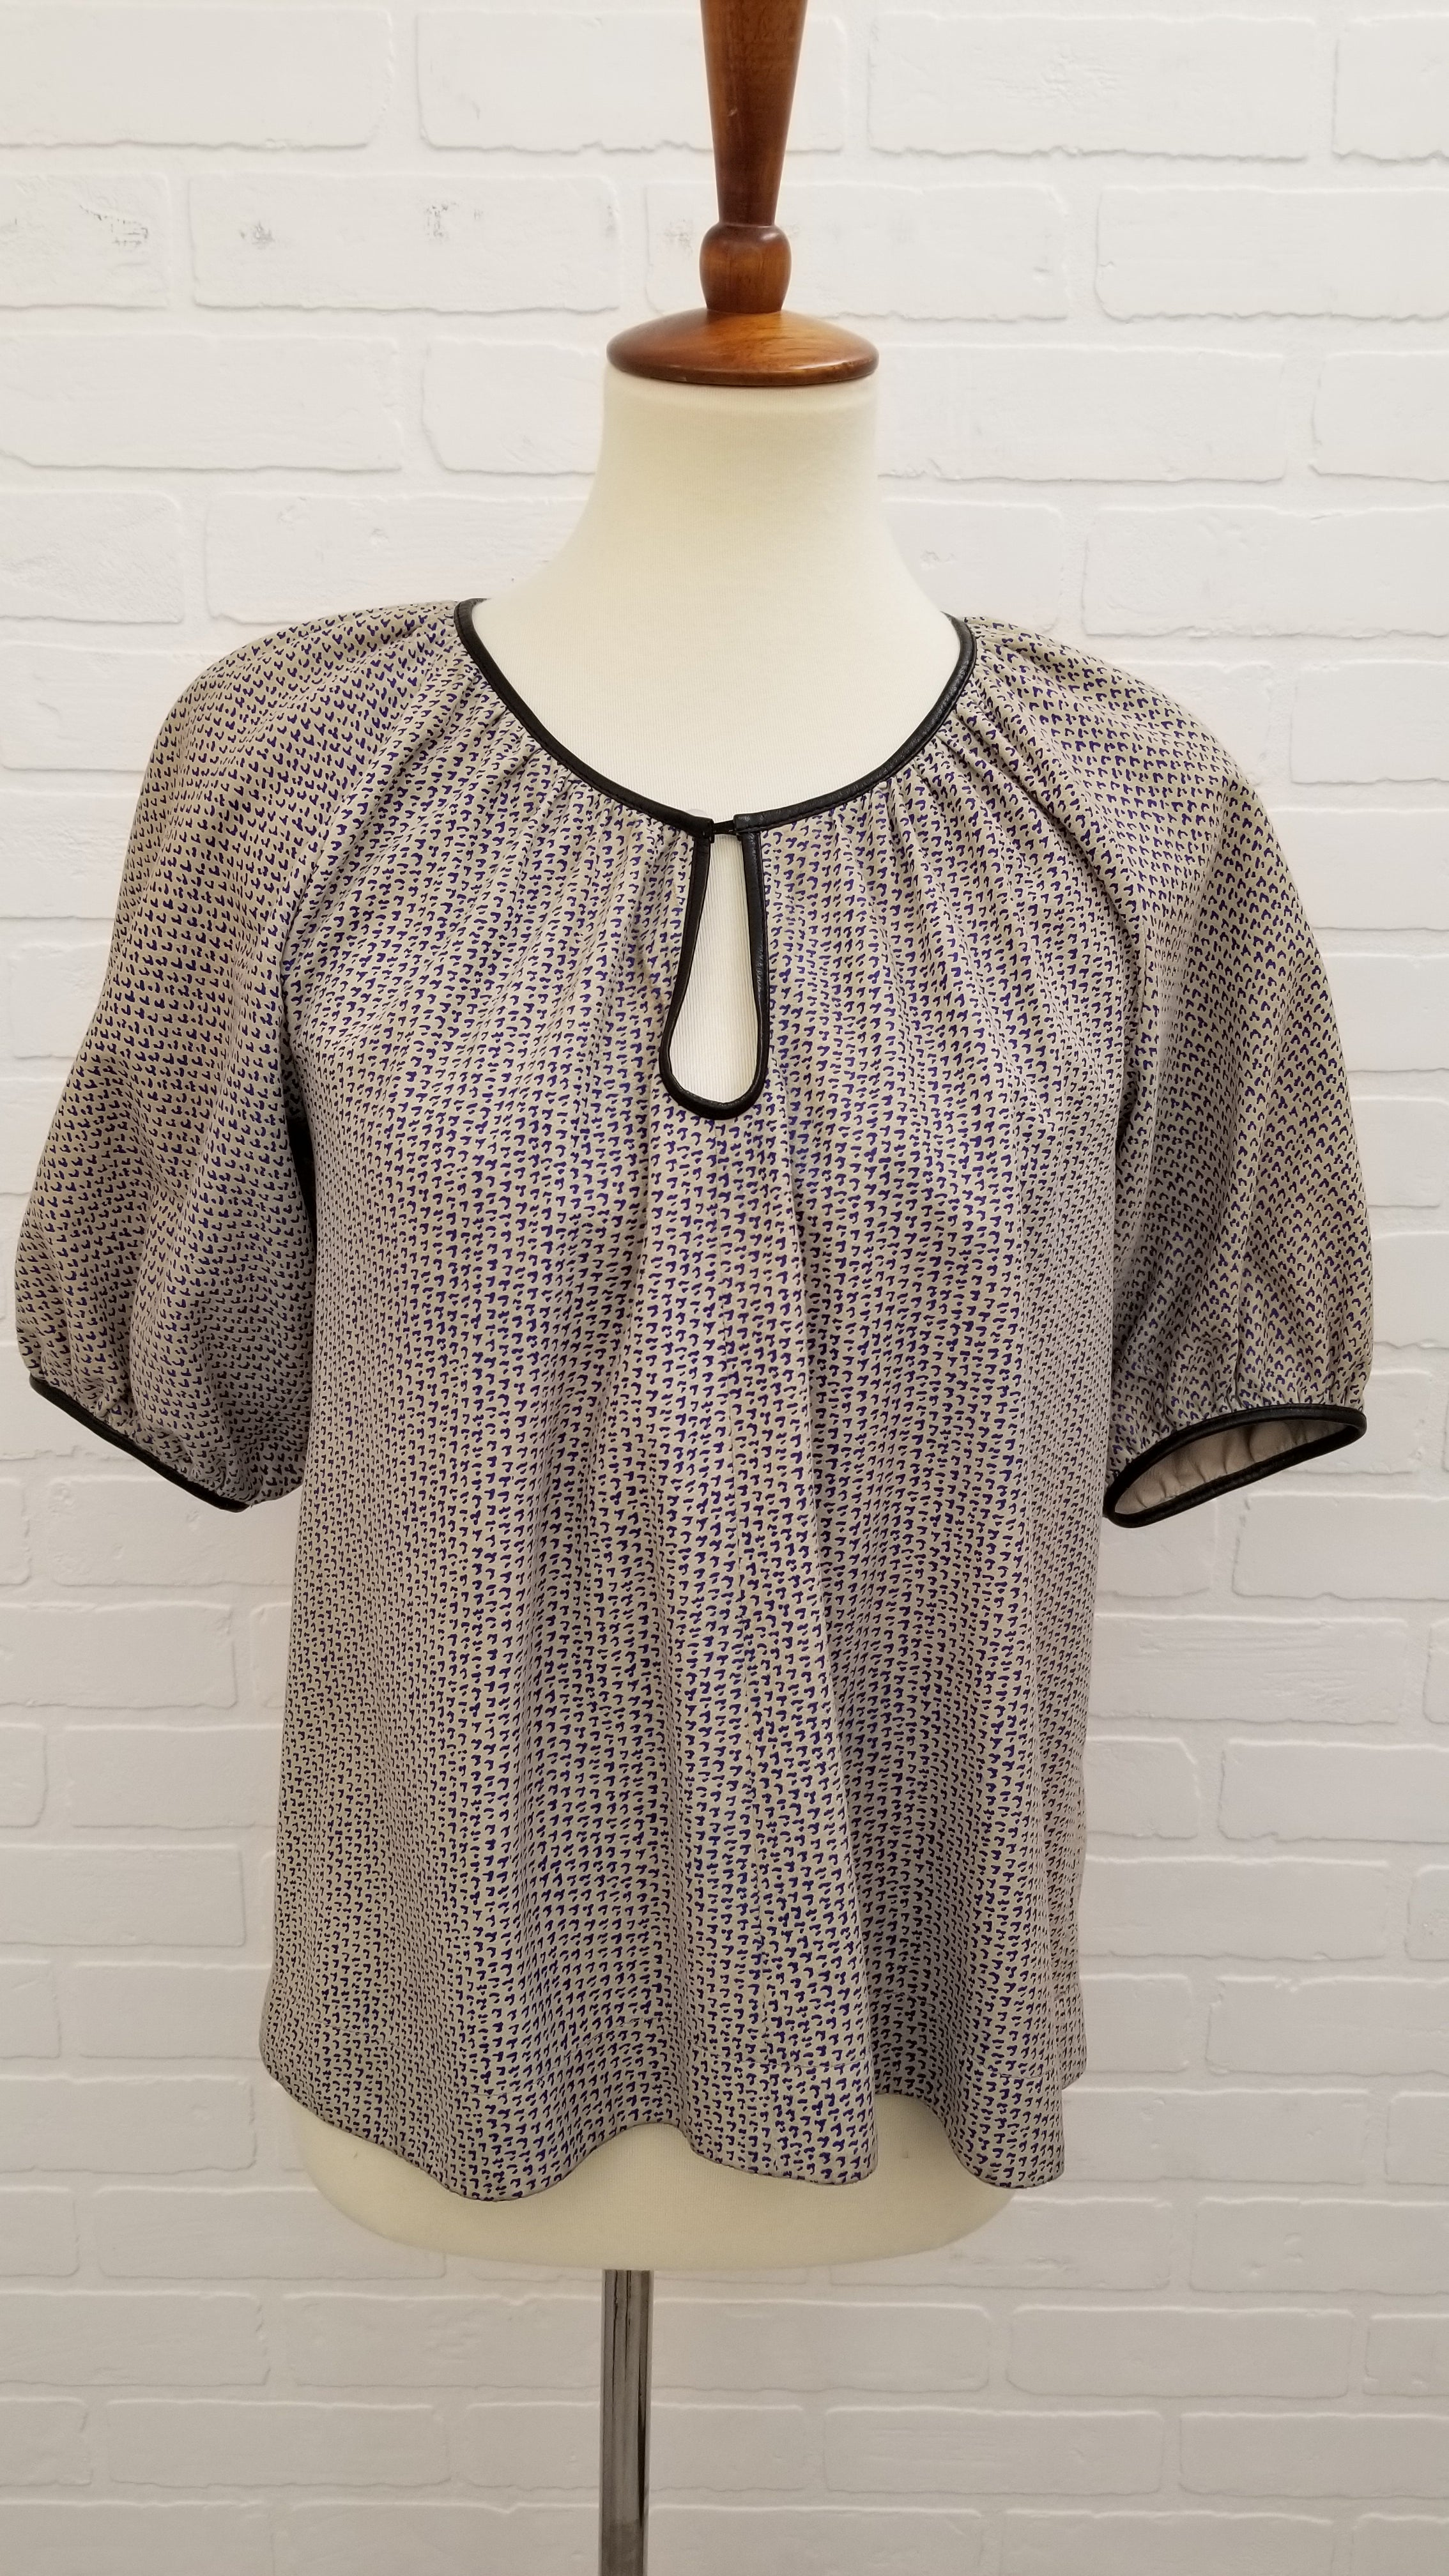 MiH Small Short Sleeve Leather Top Taupe Blau